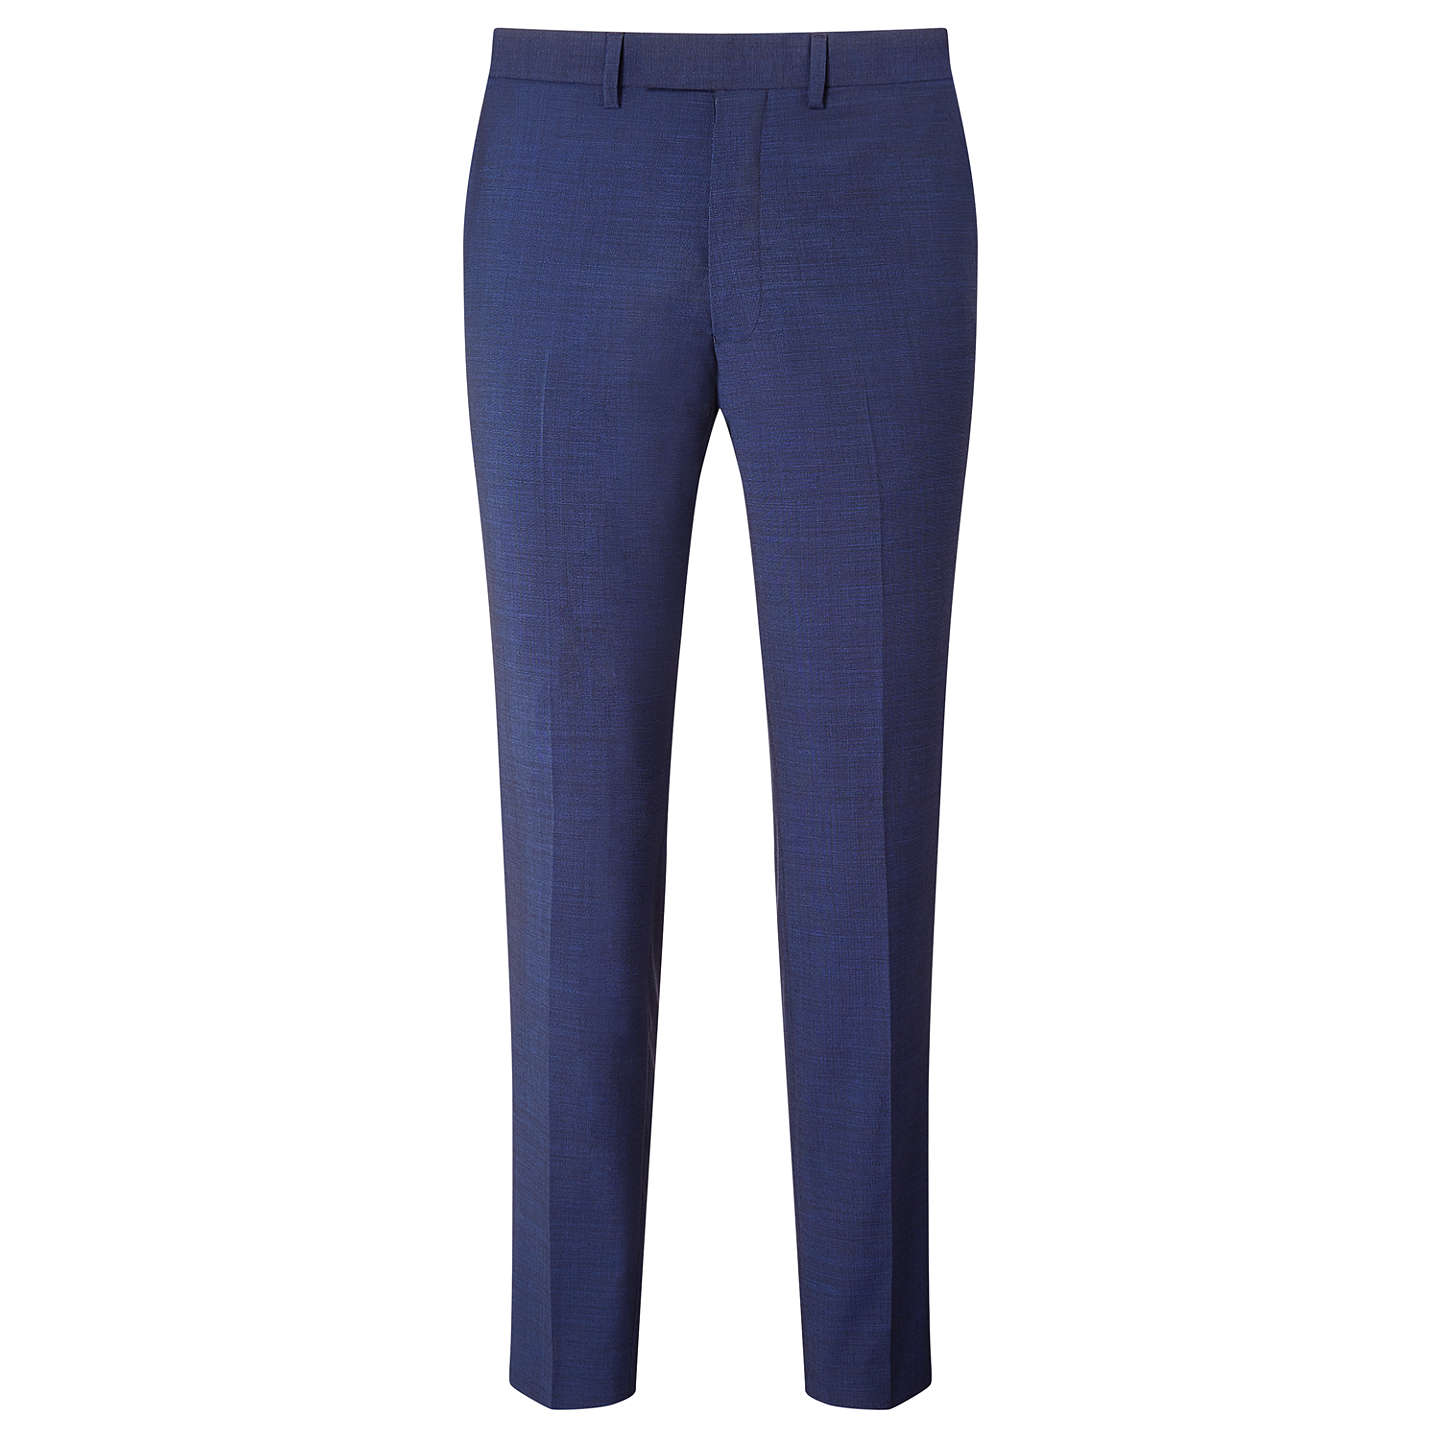 Cheap New Kin By John Lewis Miller Pindot Slim Fit Suit Trousers Bright Blue for Men Online On Sale